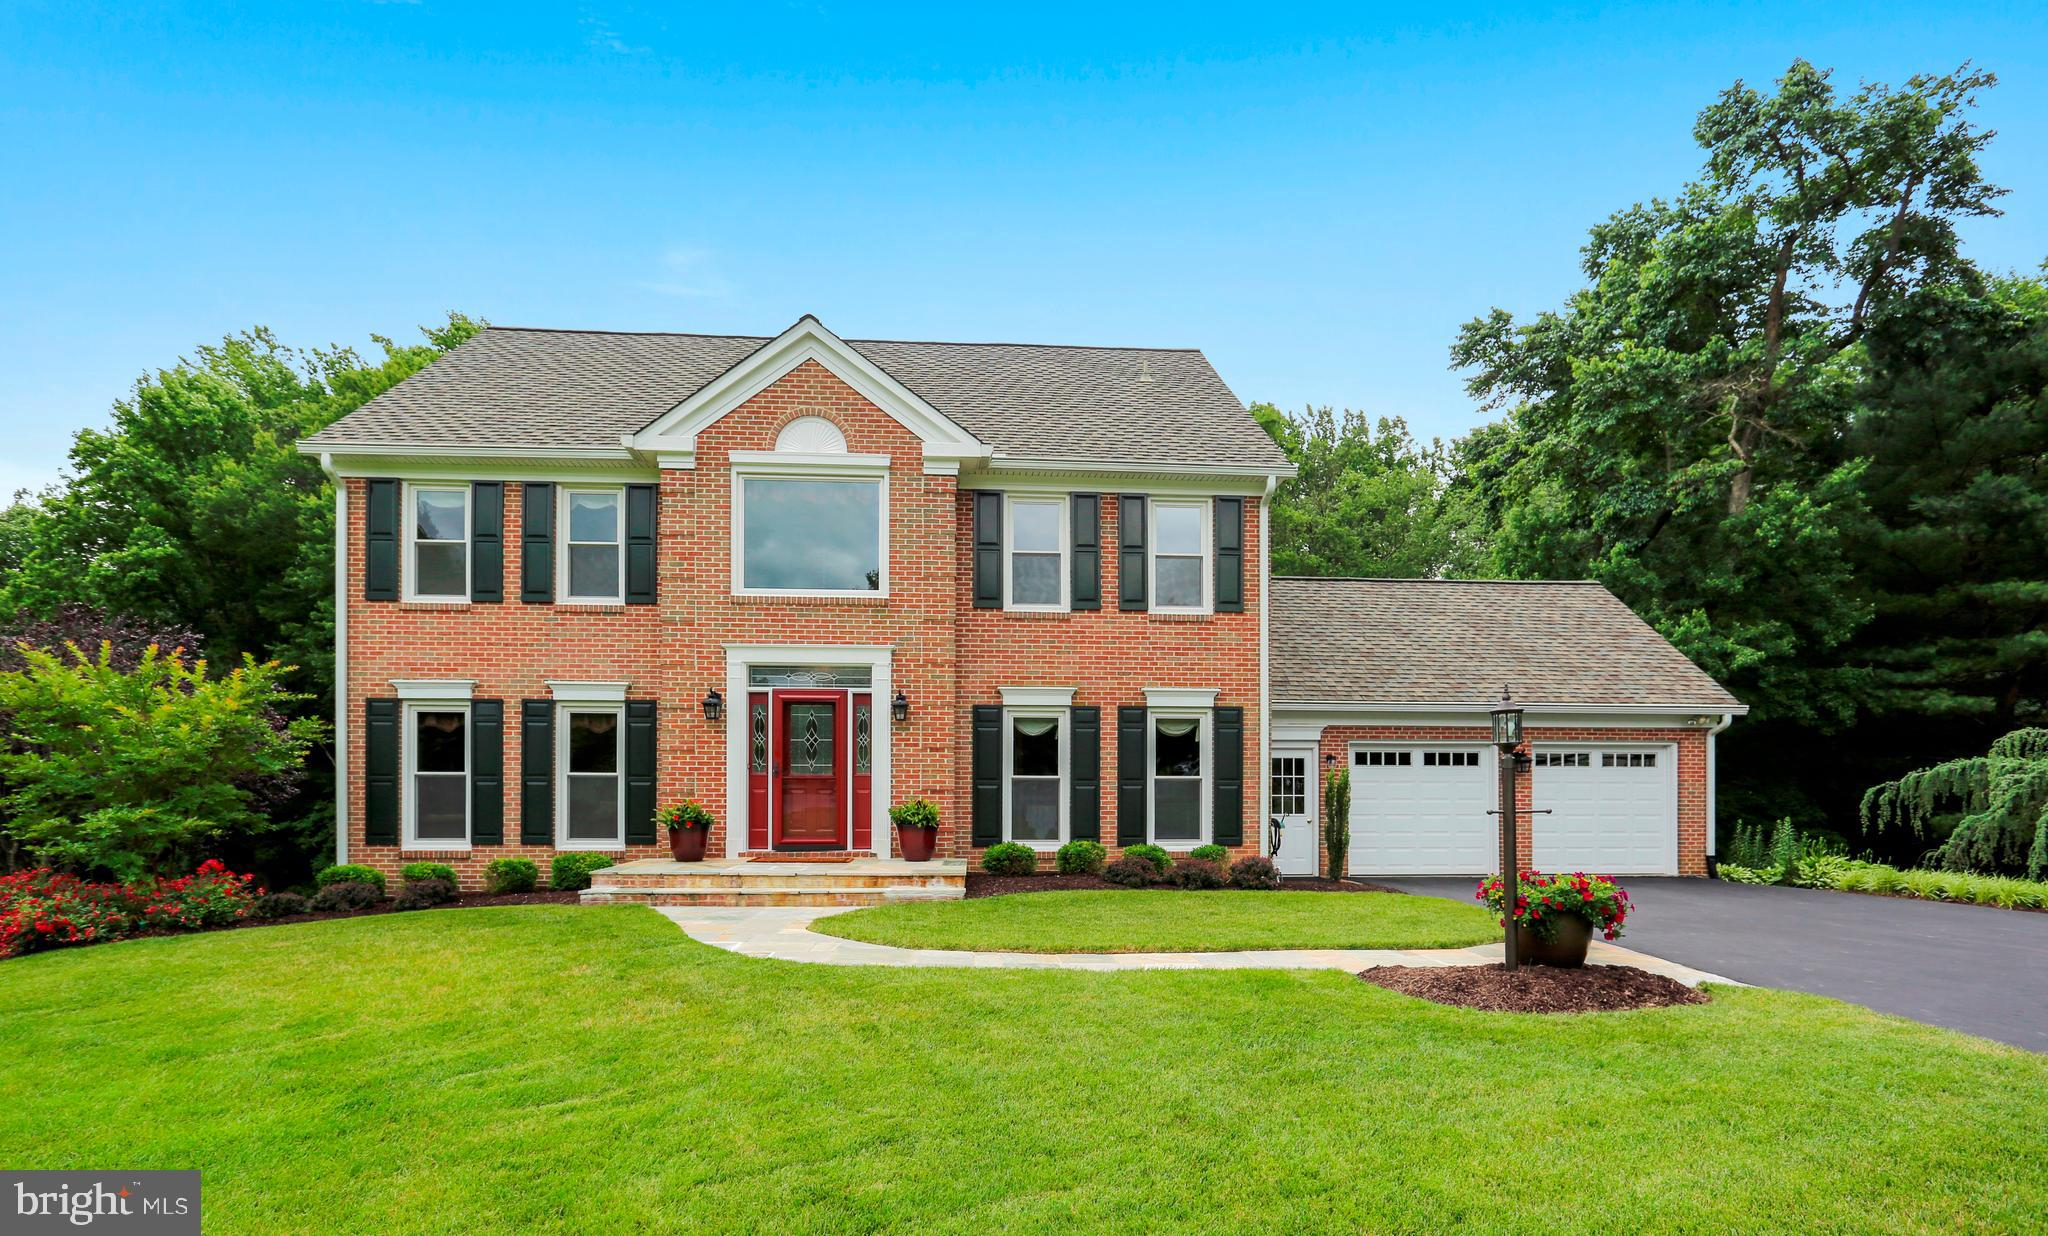 18704 SHREMOR DRIVE, ROCKVILLE, MD 20855